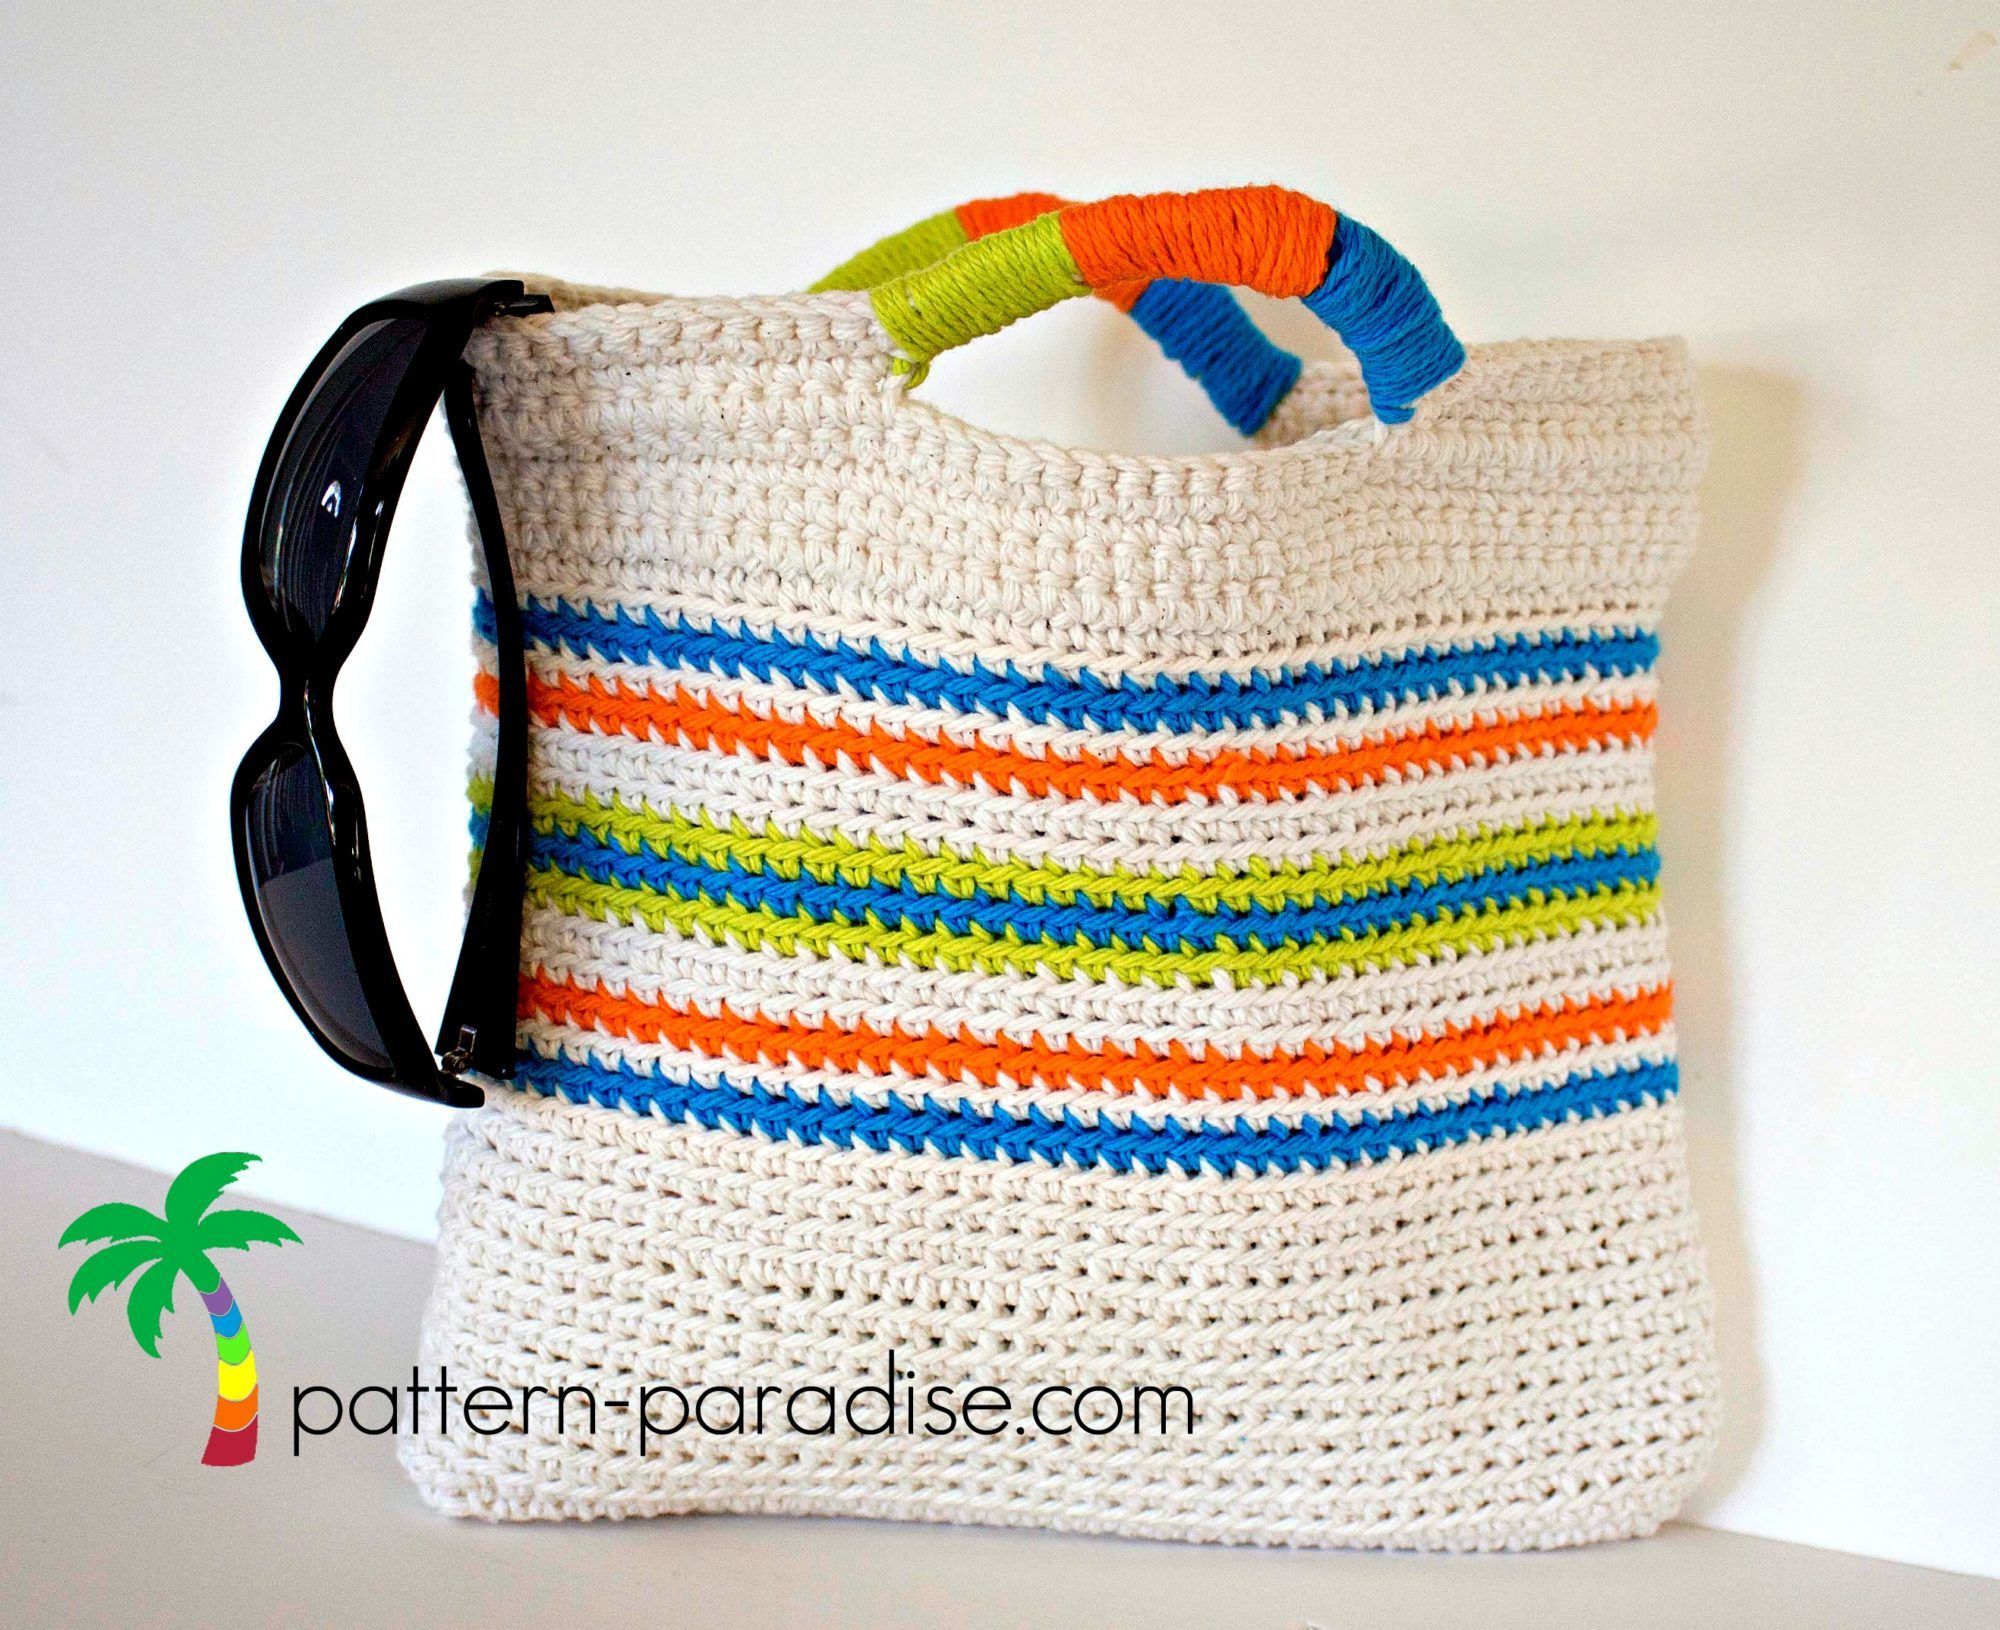 Free crochet pattern for small striped clutch purse tote bag by free crochet pattern for small striped clutch purse tote bag by pattern bankloansurffo Gallery